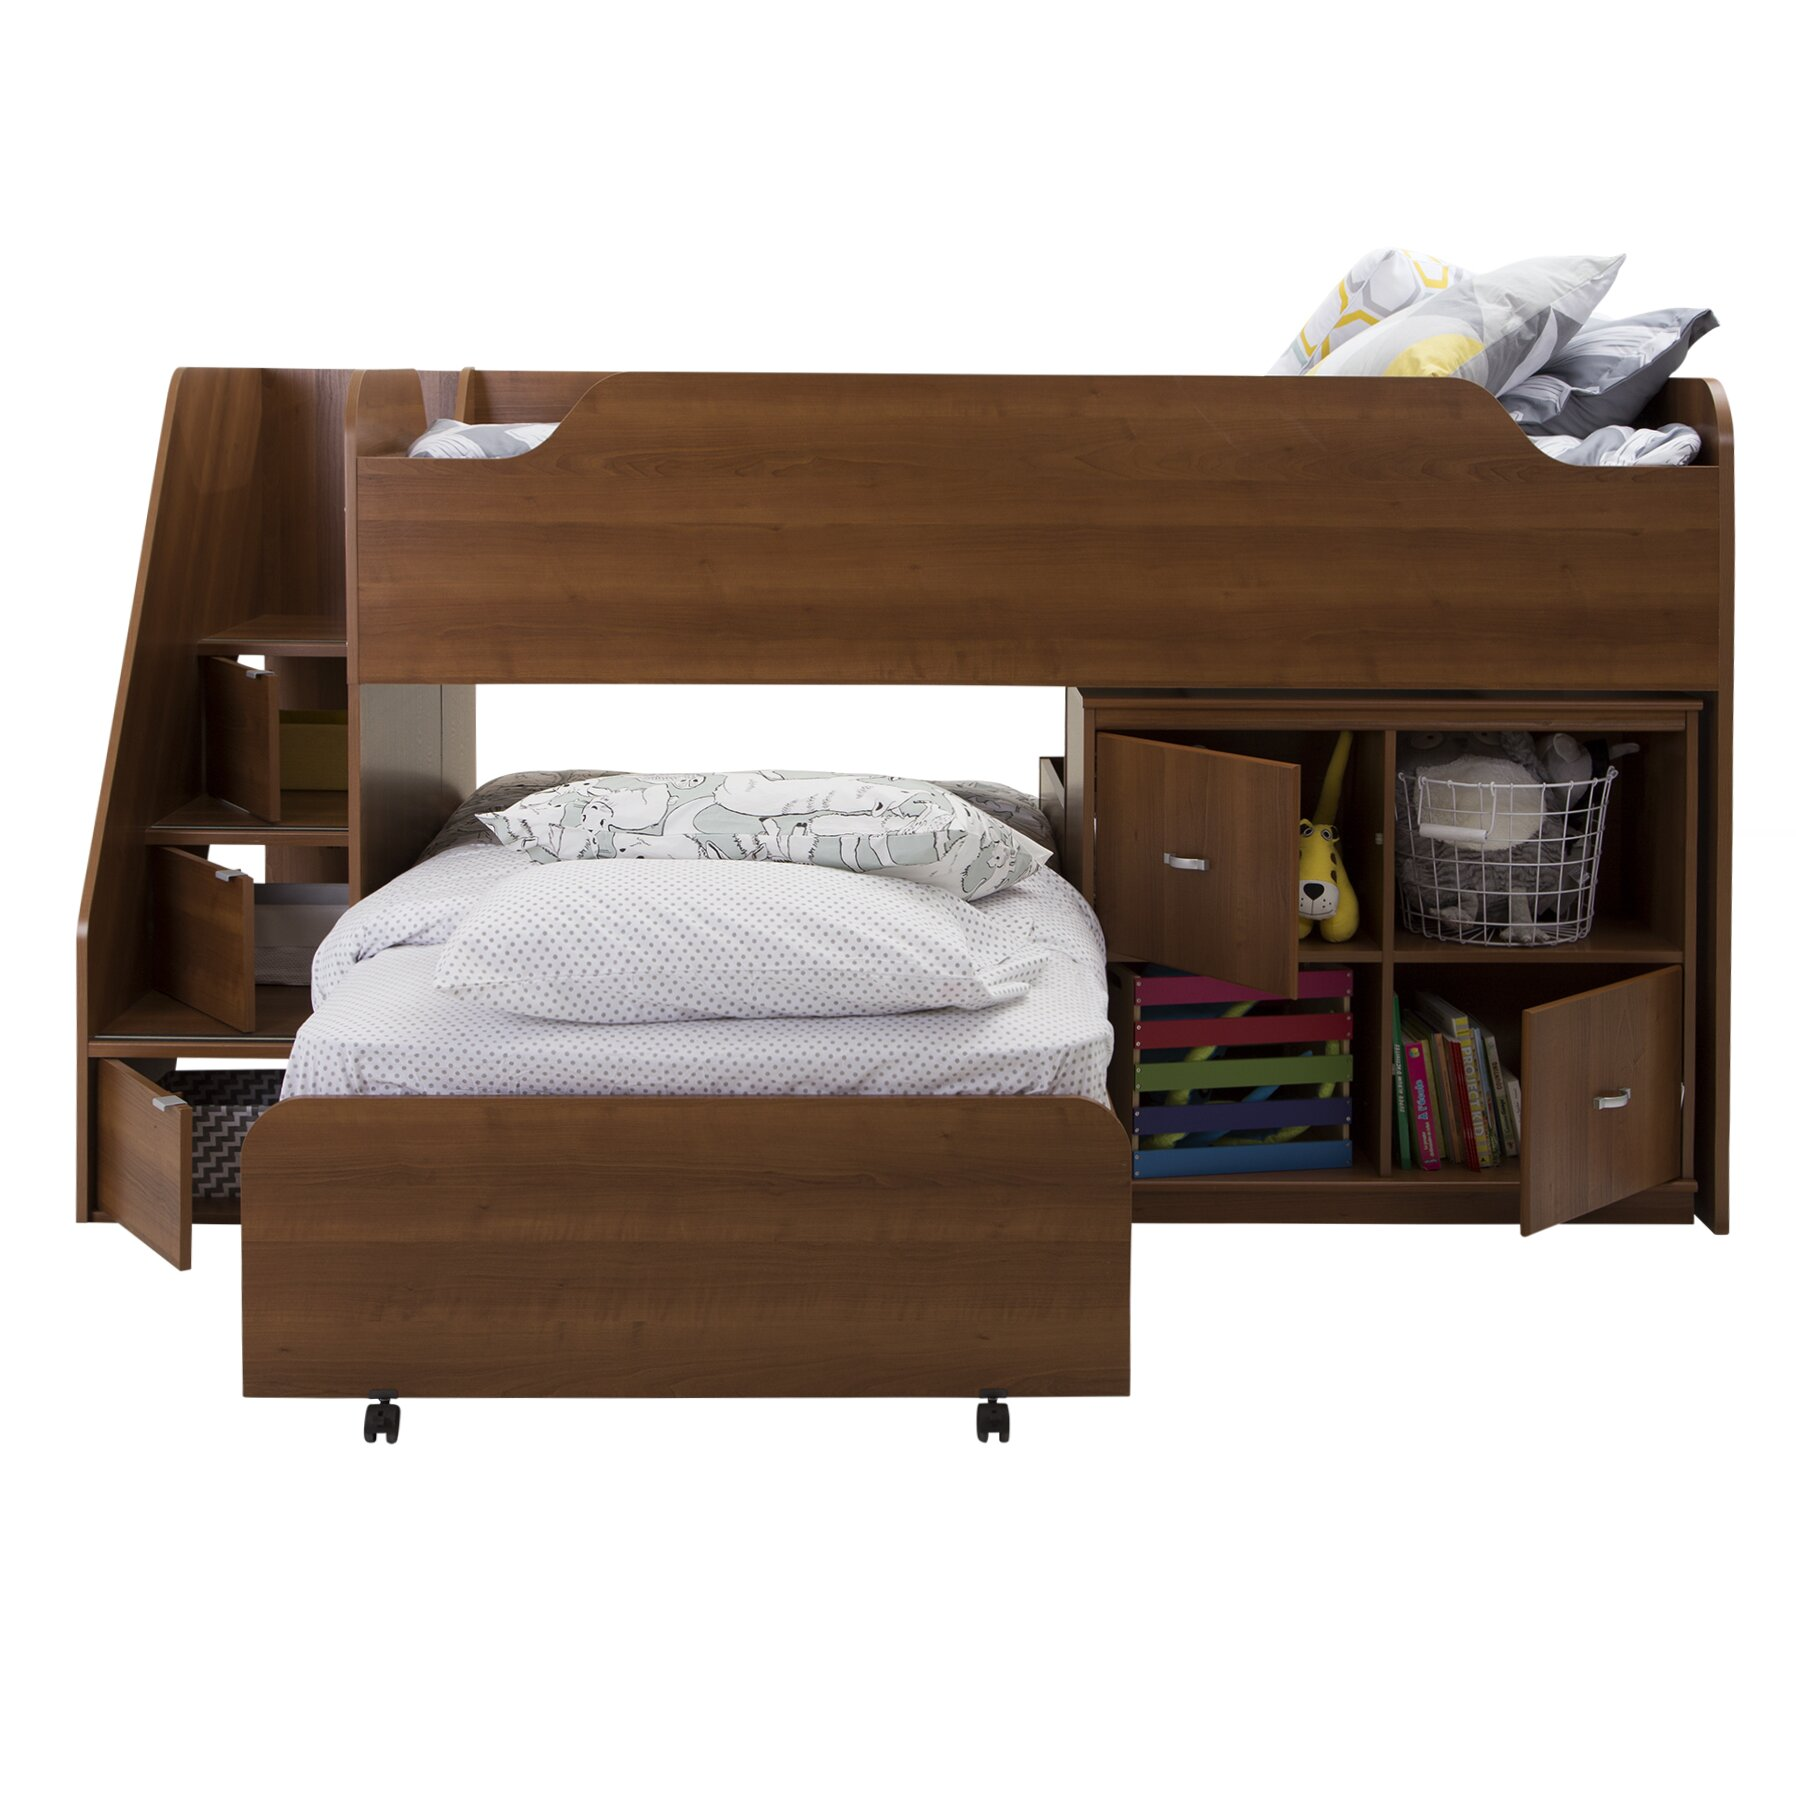 South shore mobby twin loft bed with trundle and storage for Loft bed with trundle